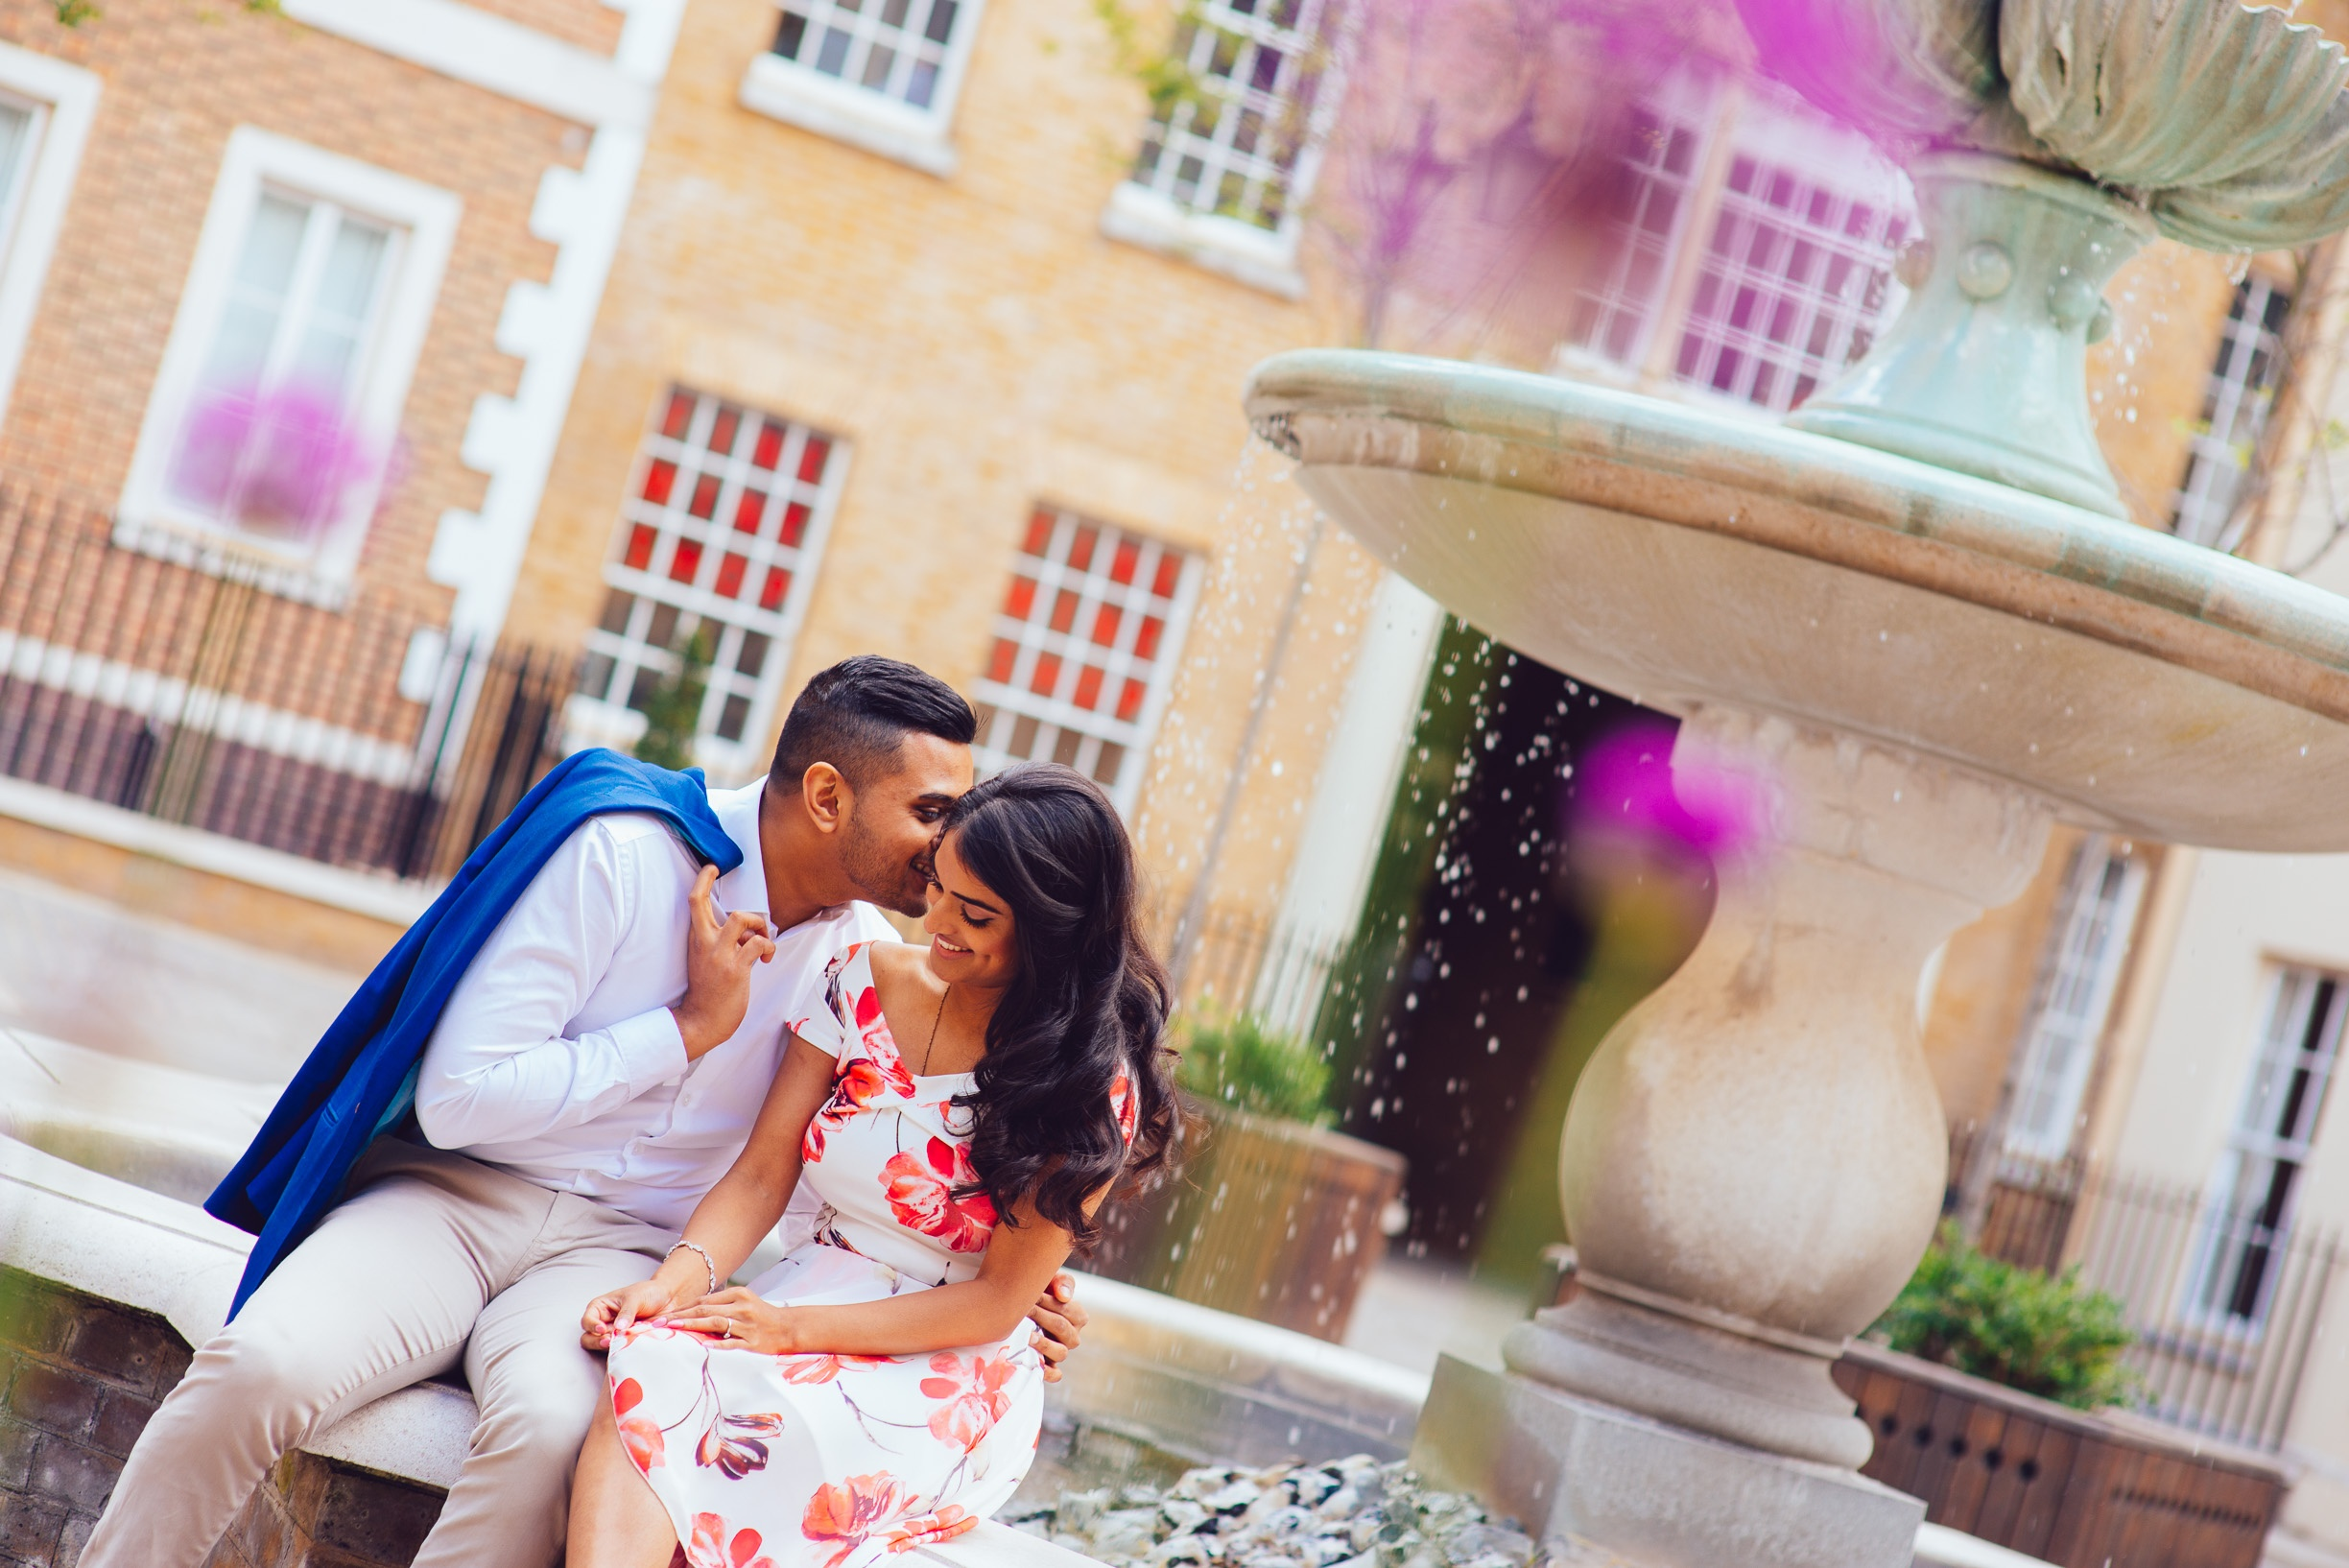 Chet&Mallika_eden_moments_couples_photography-10